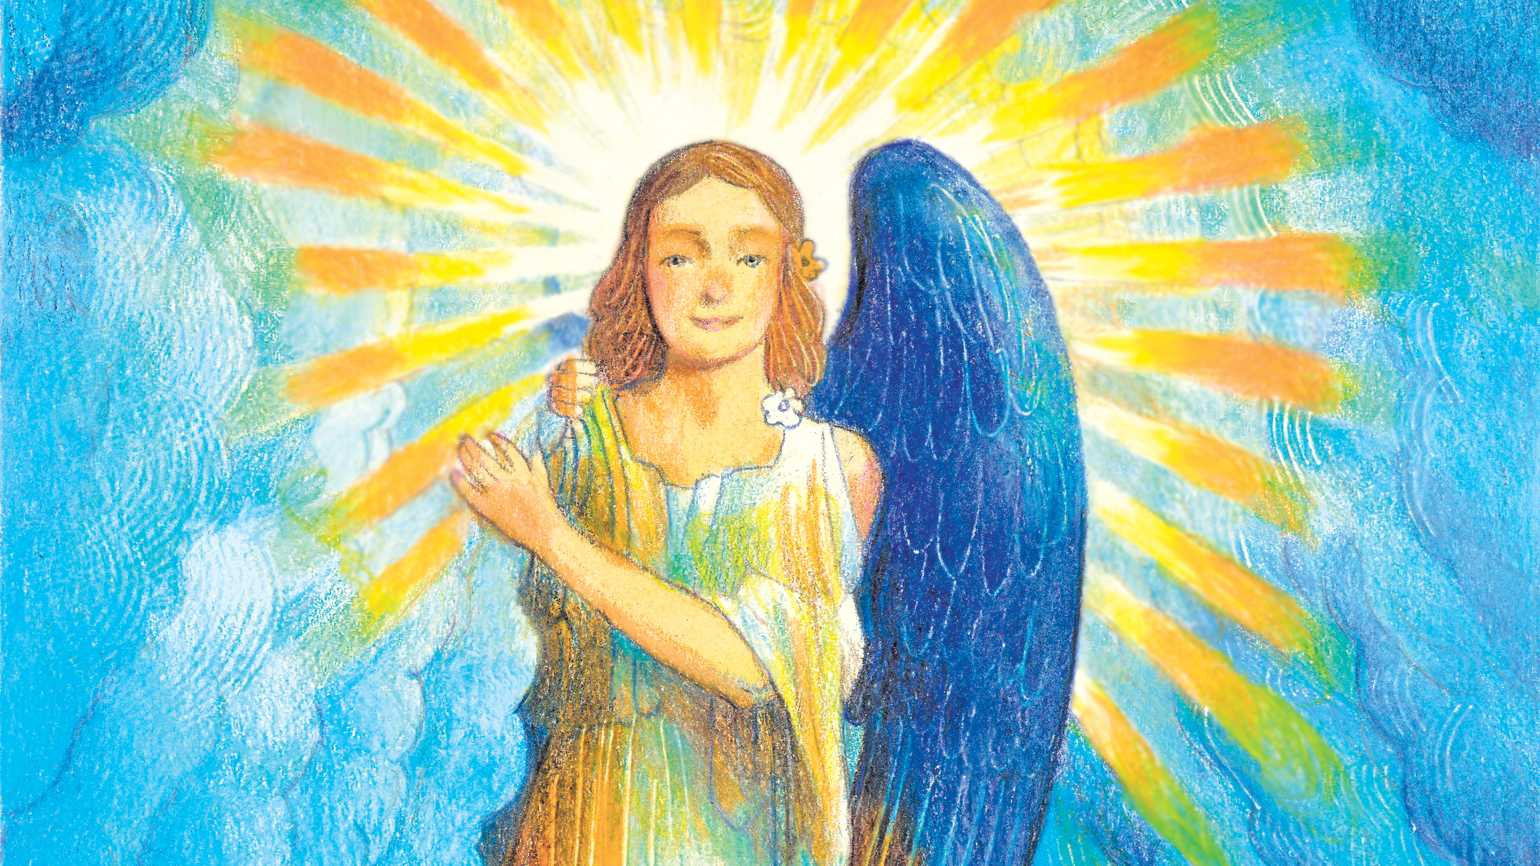 An artist's rendering of an angel princess; Illustration by Ràul Colon